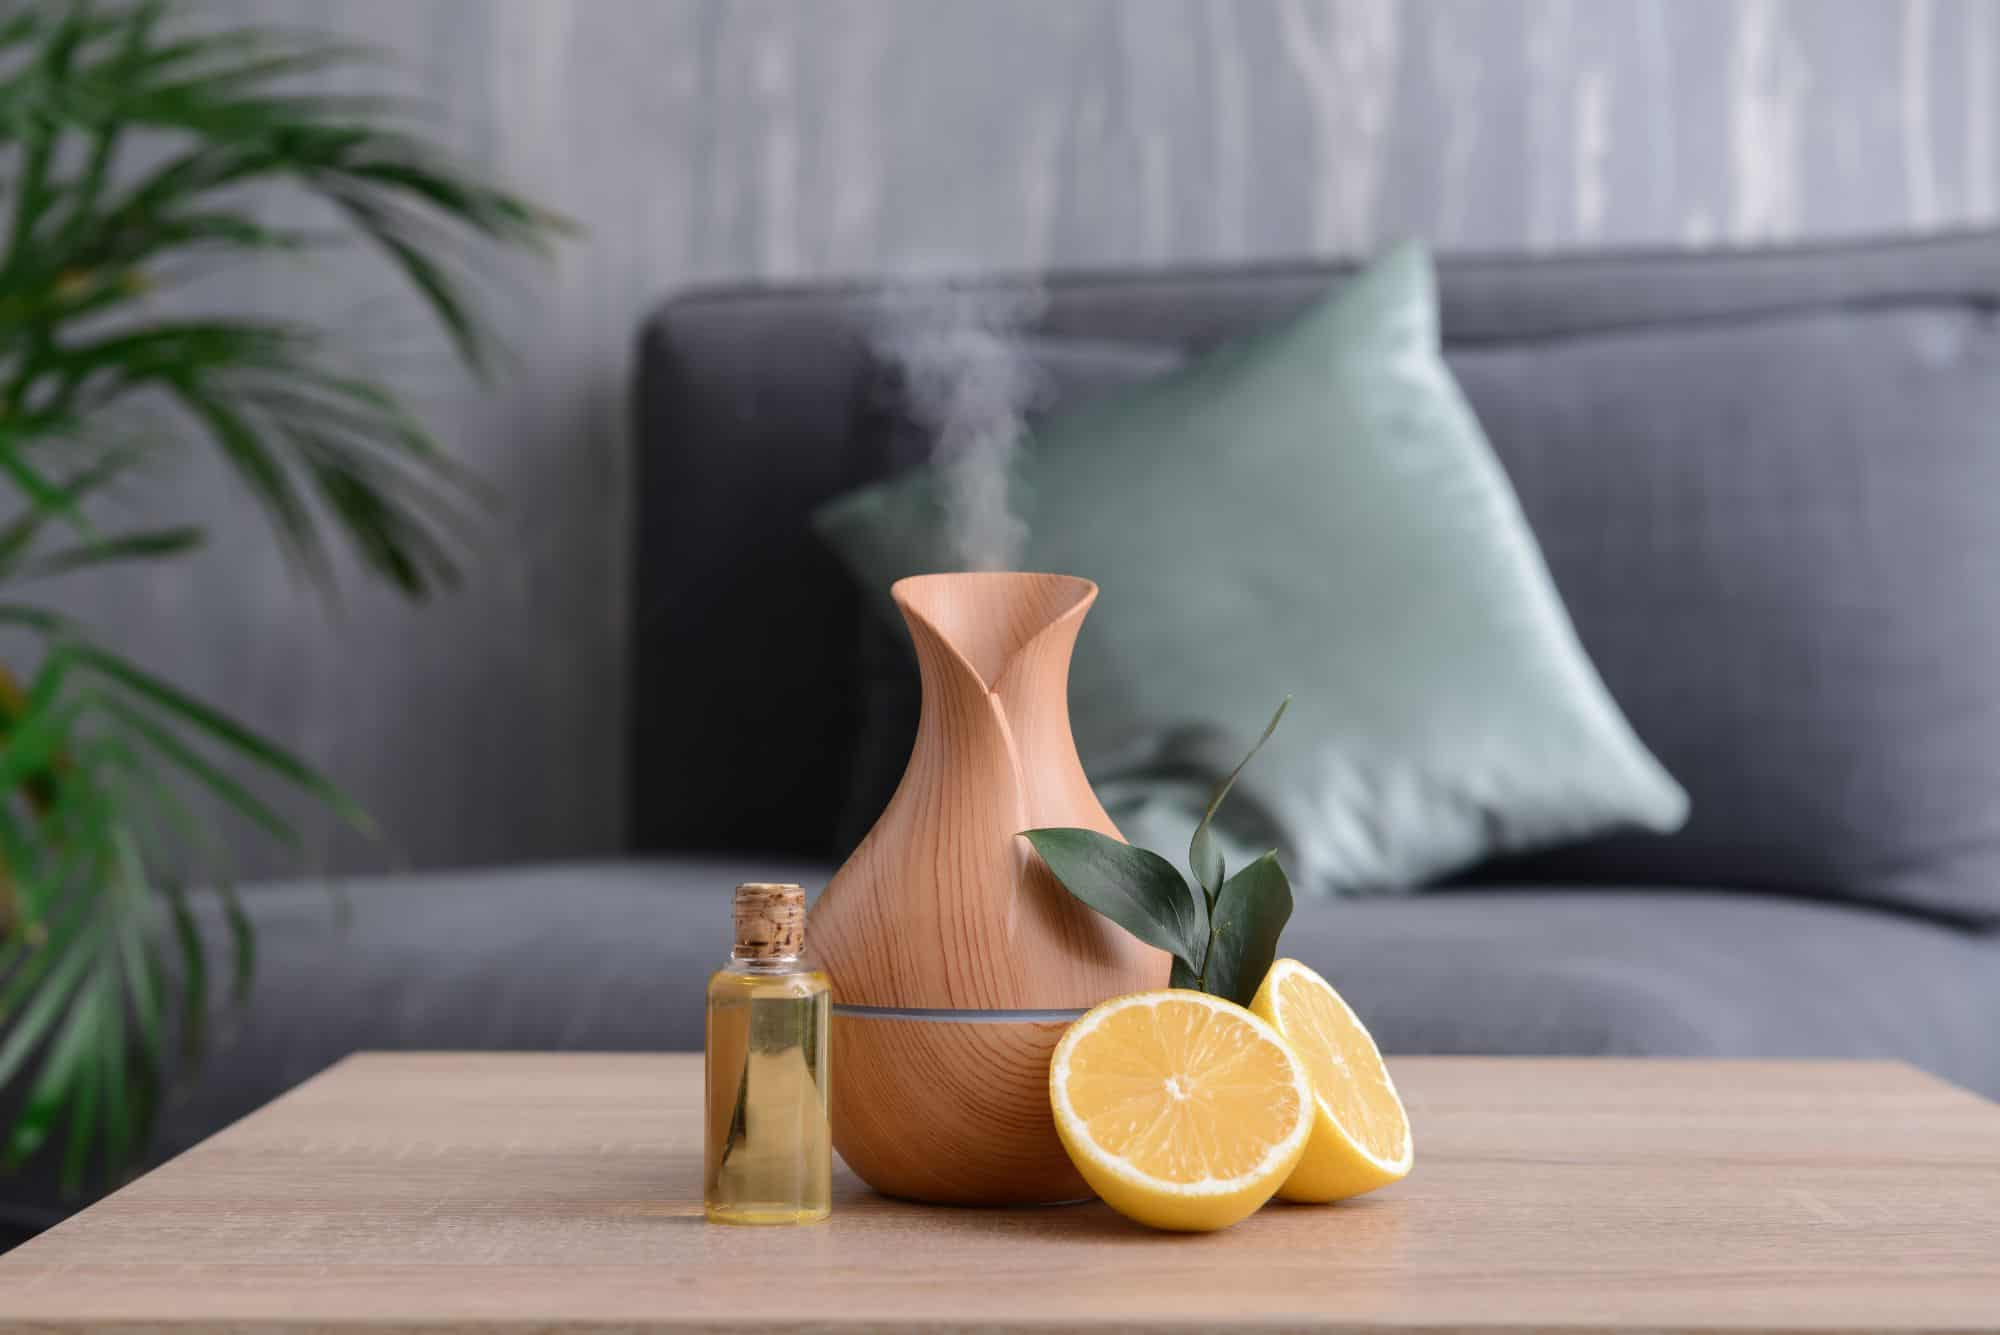 Citrus scents like these oranges and the essential oils can give you energy